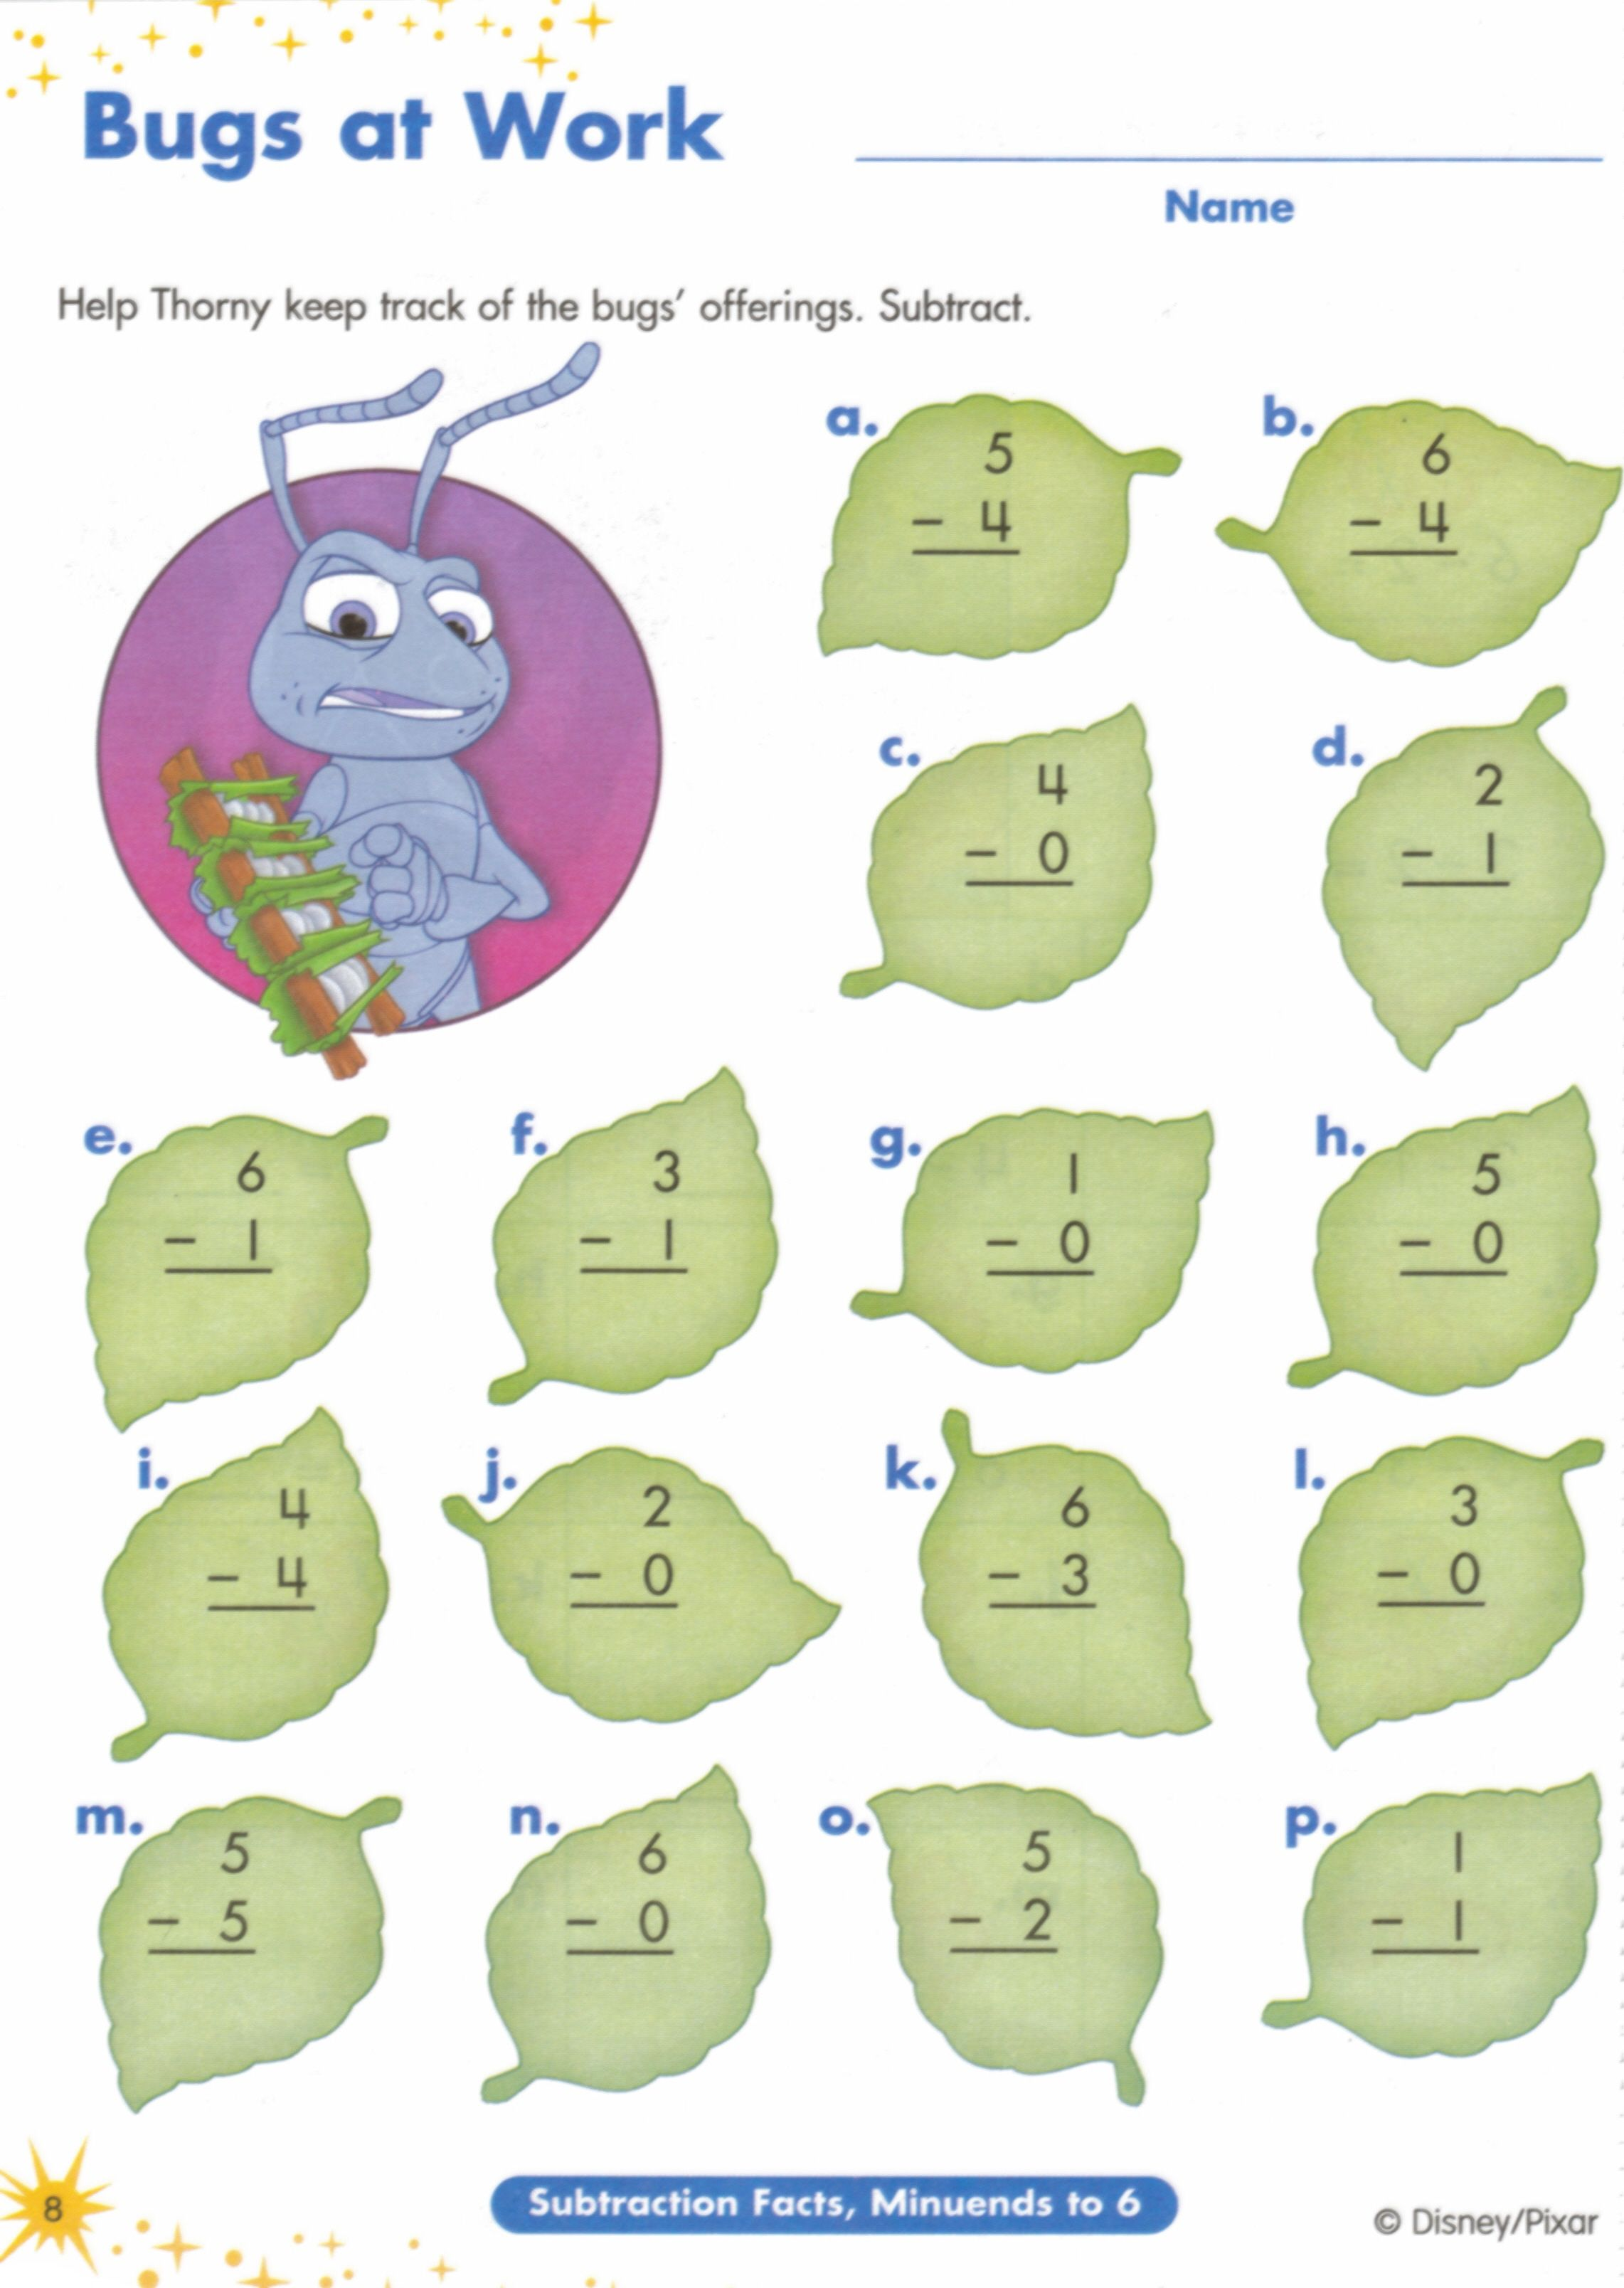 Proatmealus  Personable  Images About Worksheets On Pinterest  Fun Facts For Kids  With Fascinating  Images About Worksheets On Pinterest  Fun Facts For Kids Earth Day Worksheets And Jungles With Alluring Math Worksheets Kuta Also Commas Practice Worksheet In Addition Rhyme Worksheet And Stress Relief Worksheets As Well As Context Clues Worksheet Th Grade Additionally Converting Grams To Moles Worksheet From Pinterestcom With Proatmealus  Fascinating  Images About Worksheets On Pinterest  Fun Facts For Kids  With Alluring  Images About Worksheets On Pinterest  Fun Facts For Kids Earth Day Worksheets And Jungles And Personable Math Worksheets Kuta Also Commas Practice Worksheet In Addition Rhyme Worksheet From Pinterestcom